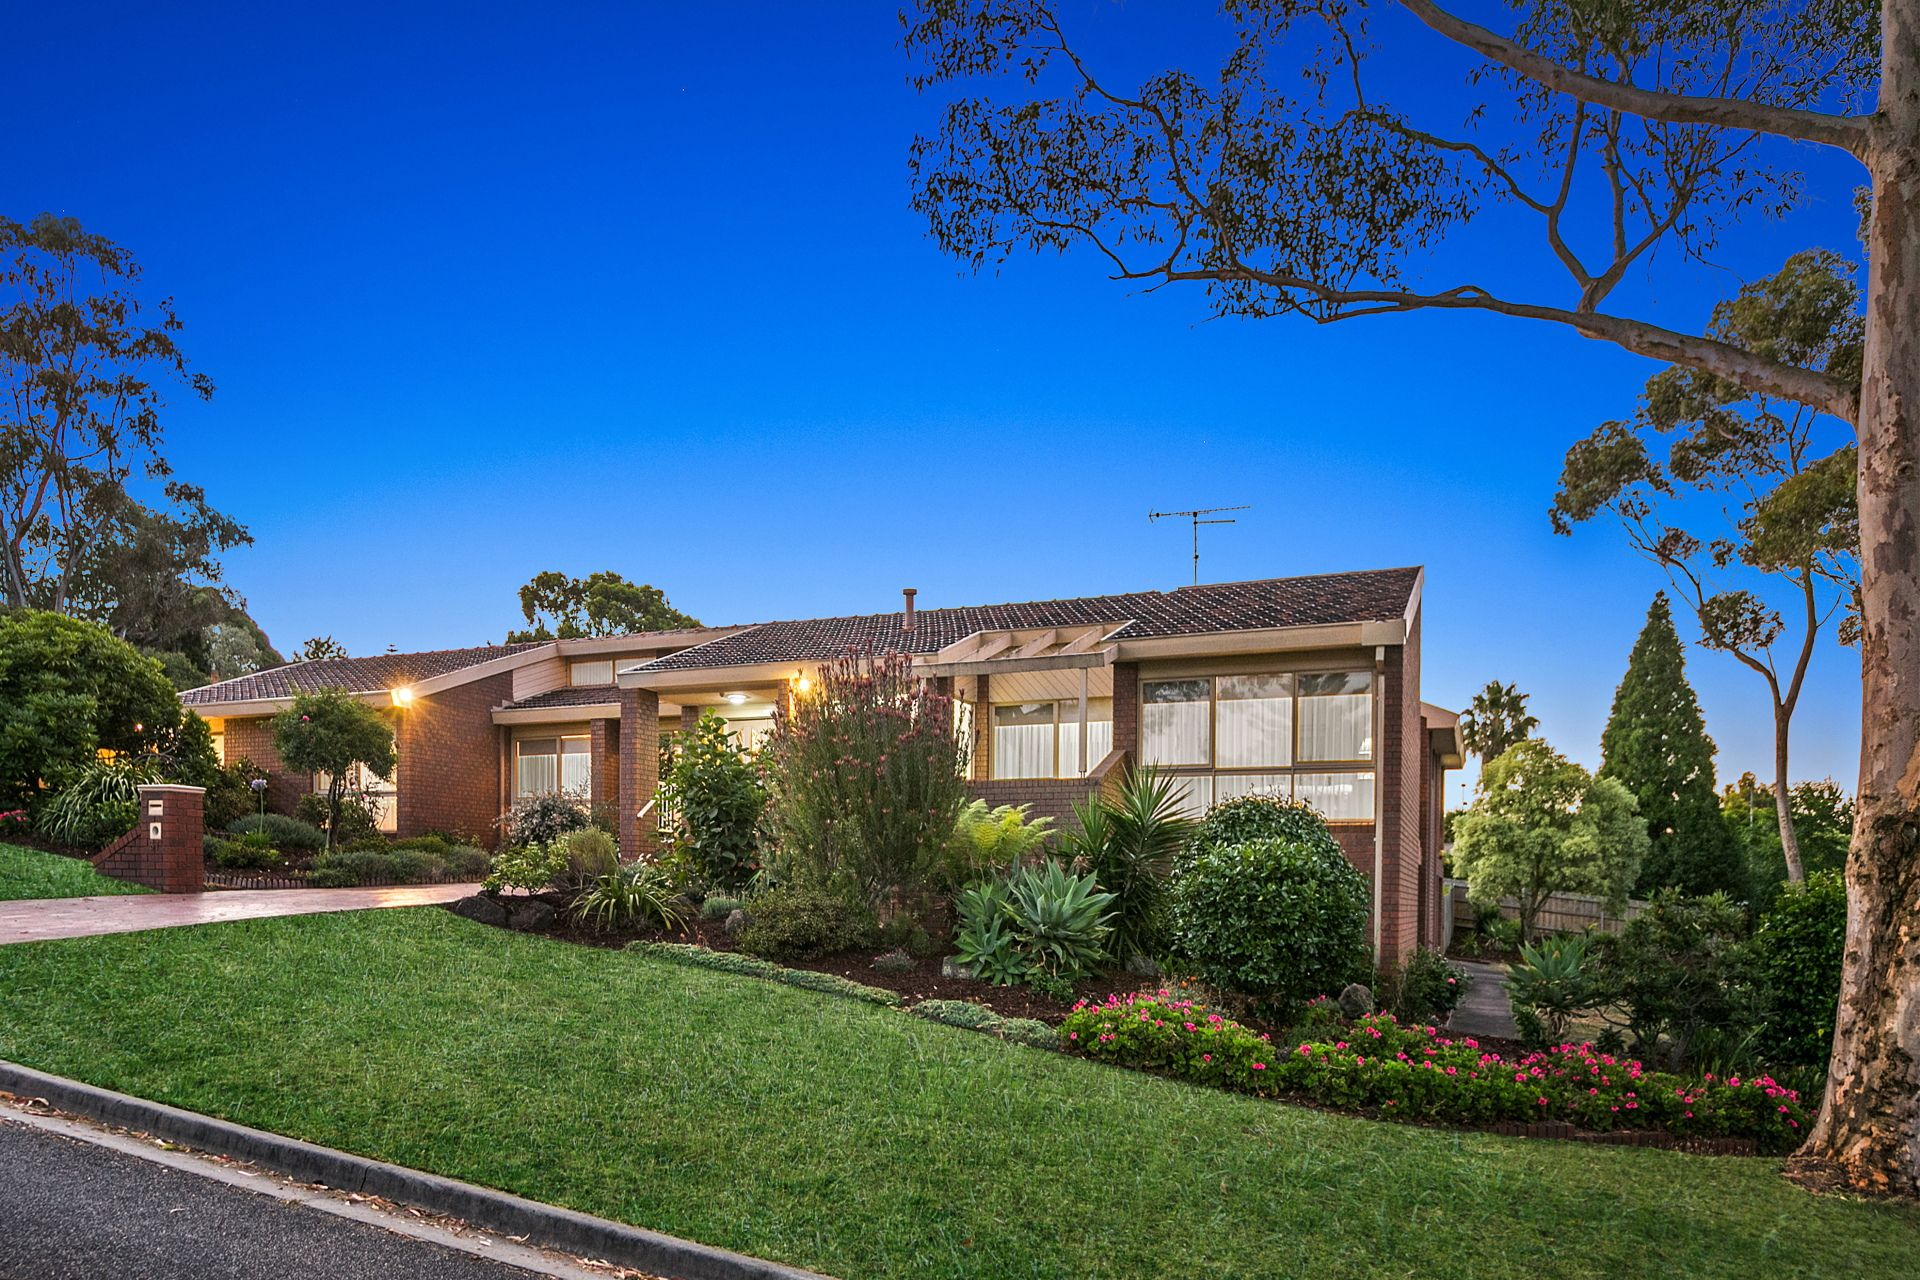 37 Alicudi Avenue, FRANKSTON SOUTH, VIC, 3199 - Image